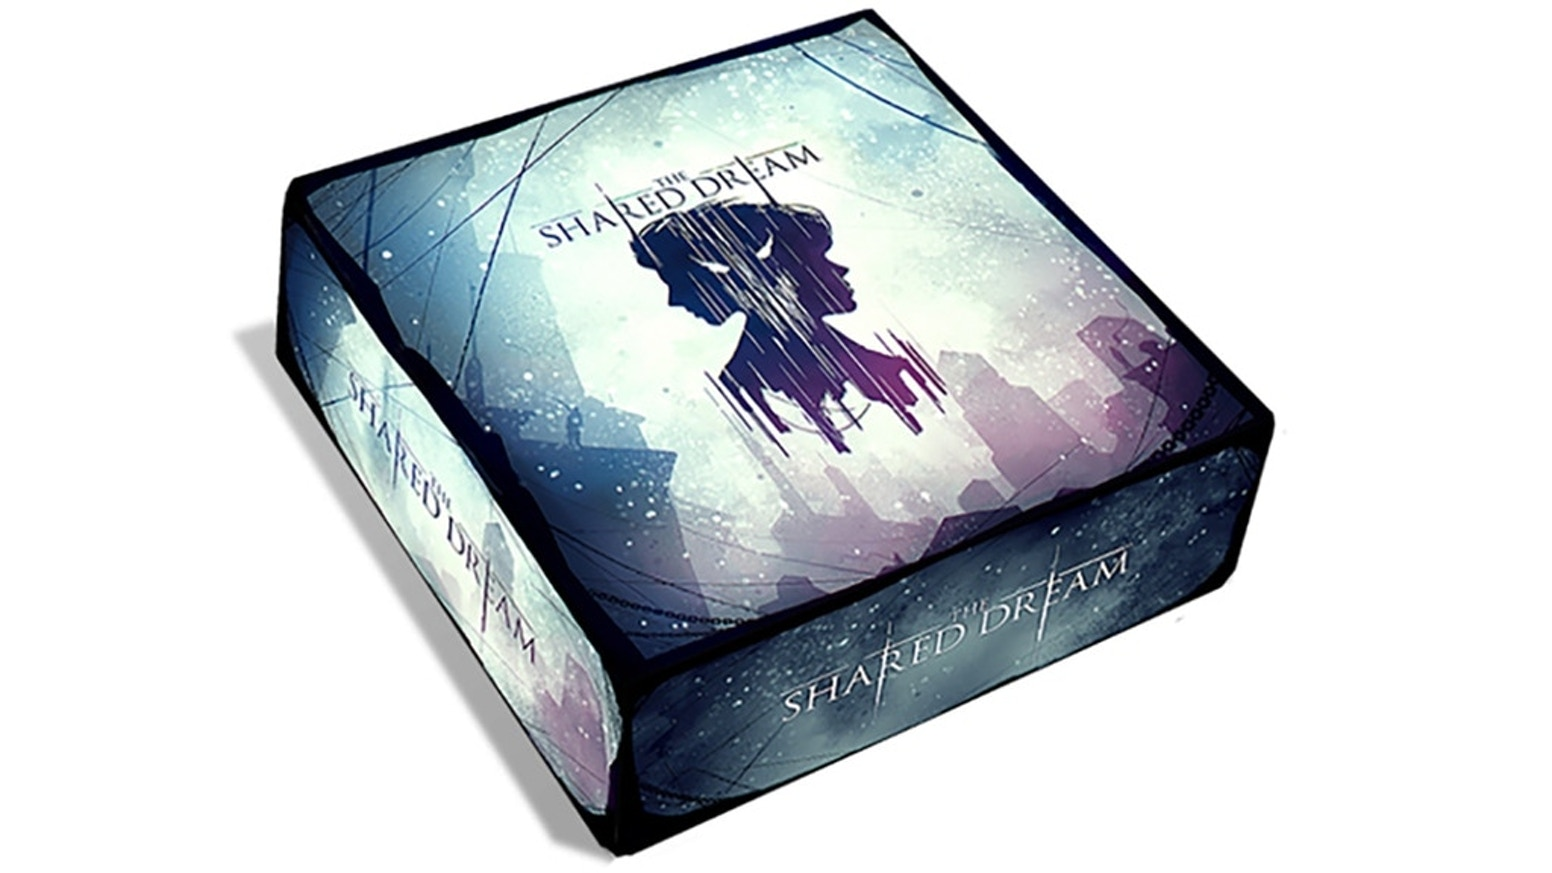 A reprint of the modern fantasy cooperative board game The Shared Dream.